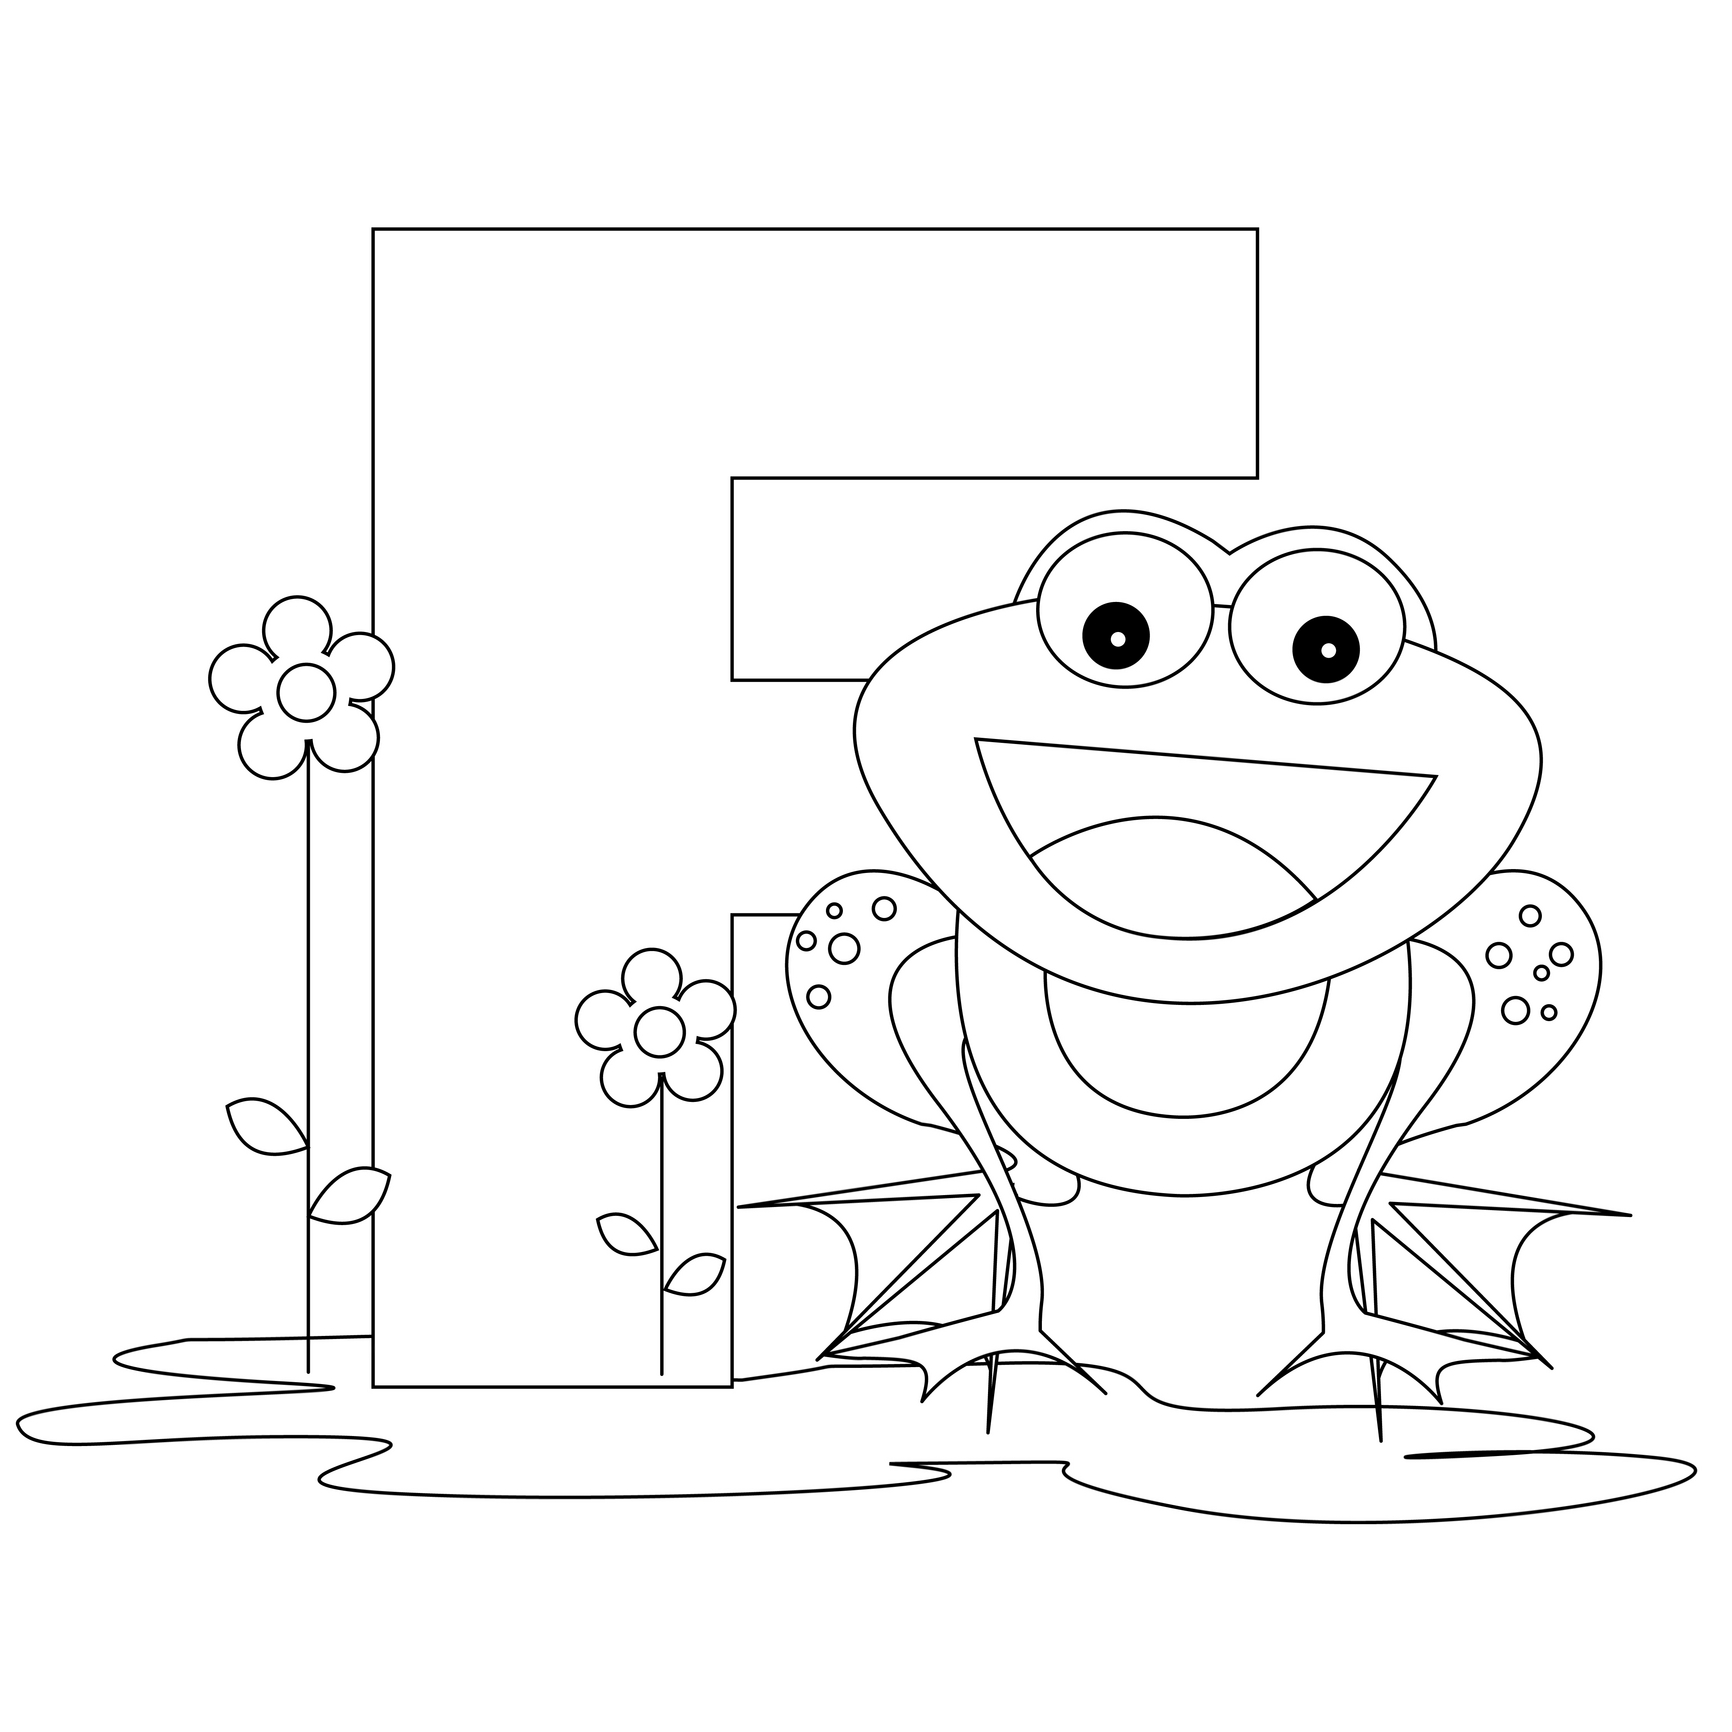 emejing letter coloring sheets contemporary new printable coloring pages aleks jqus